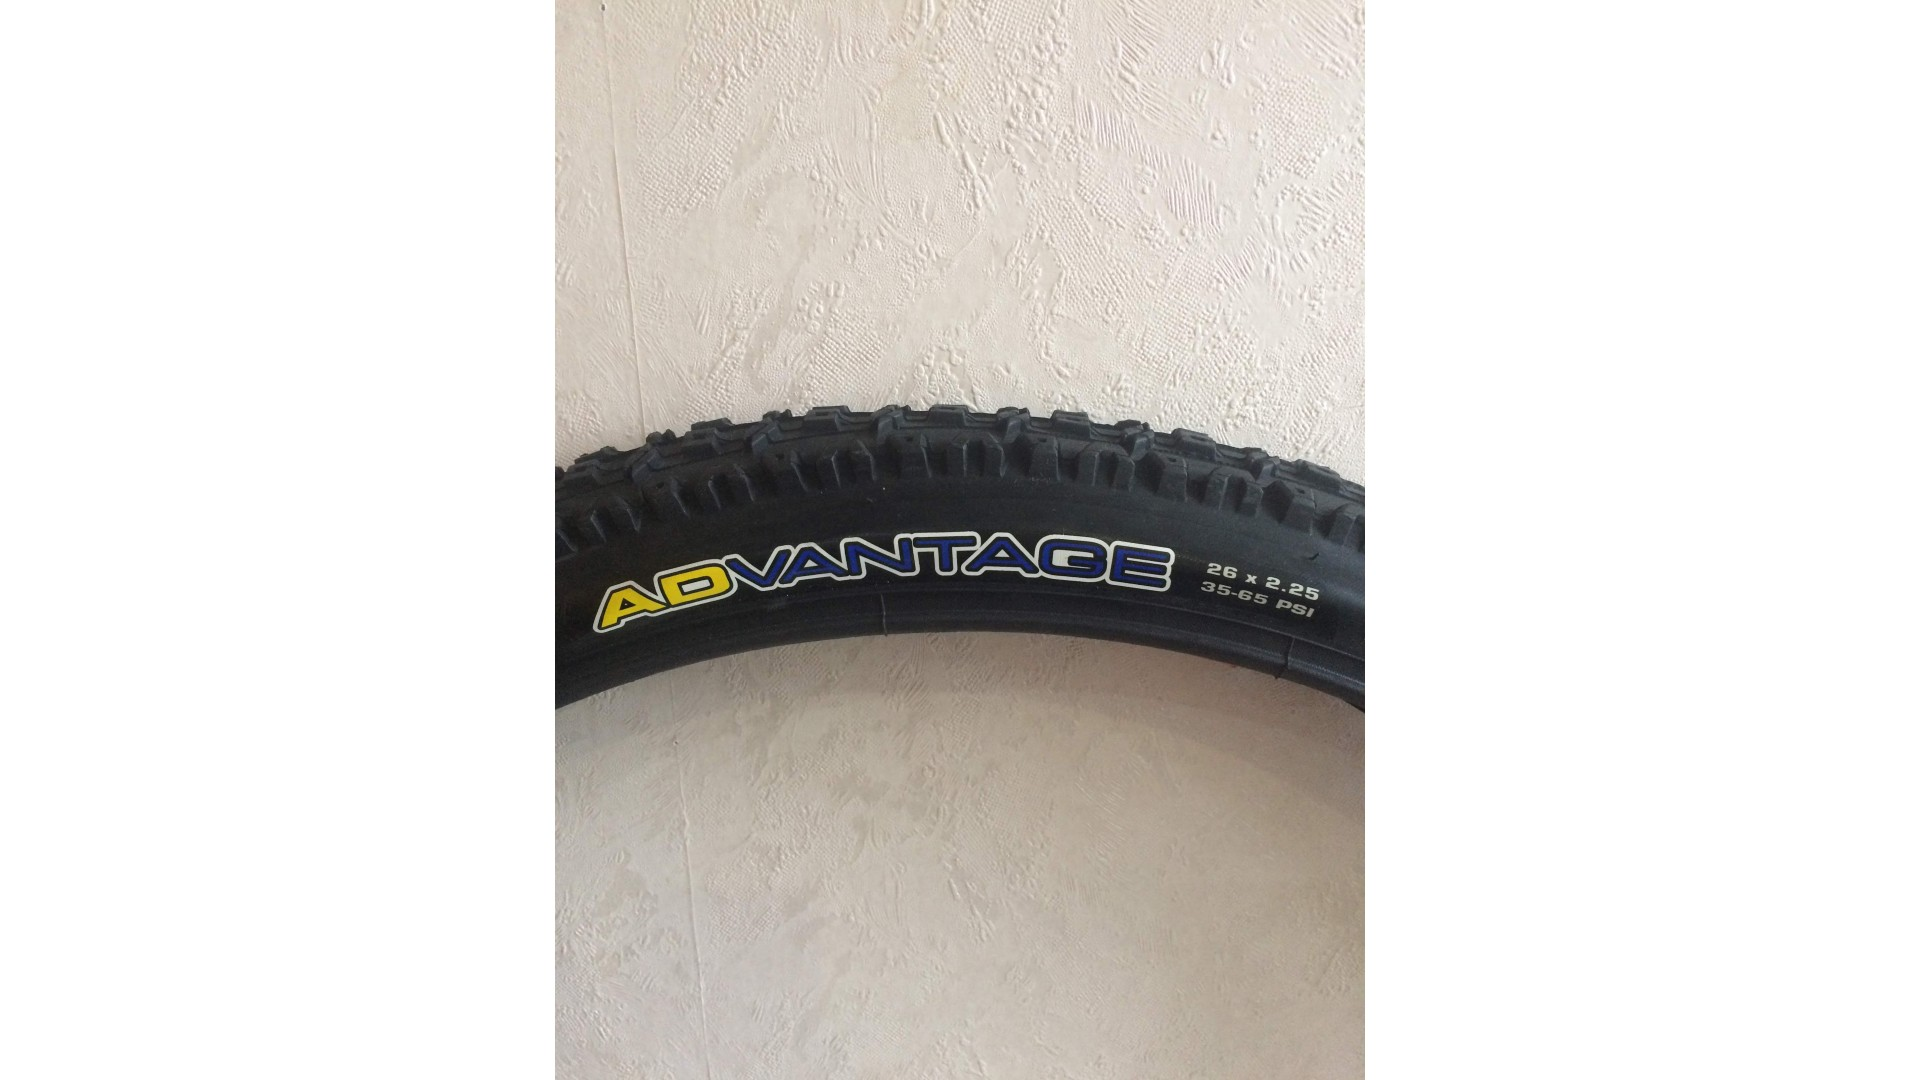 Покрышка Maxxis 26x2.25, ADvantage ф2